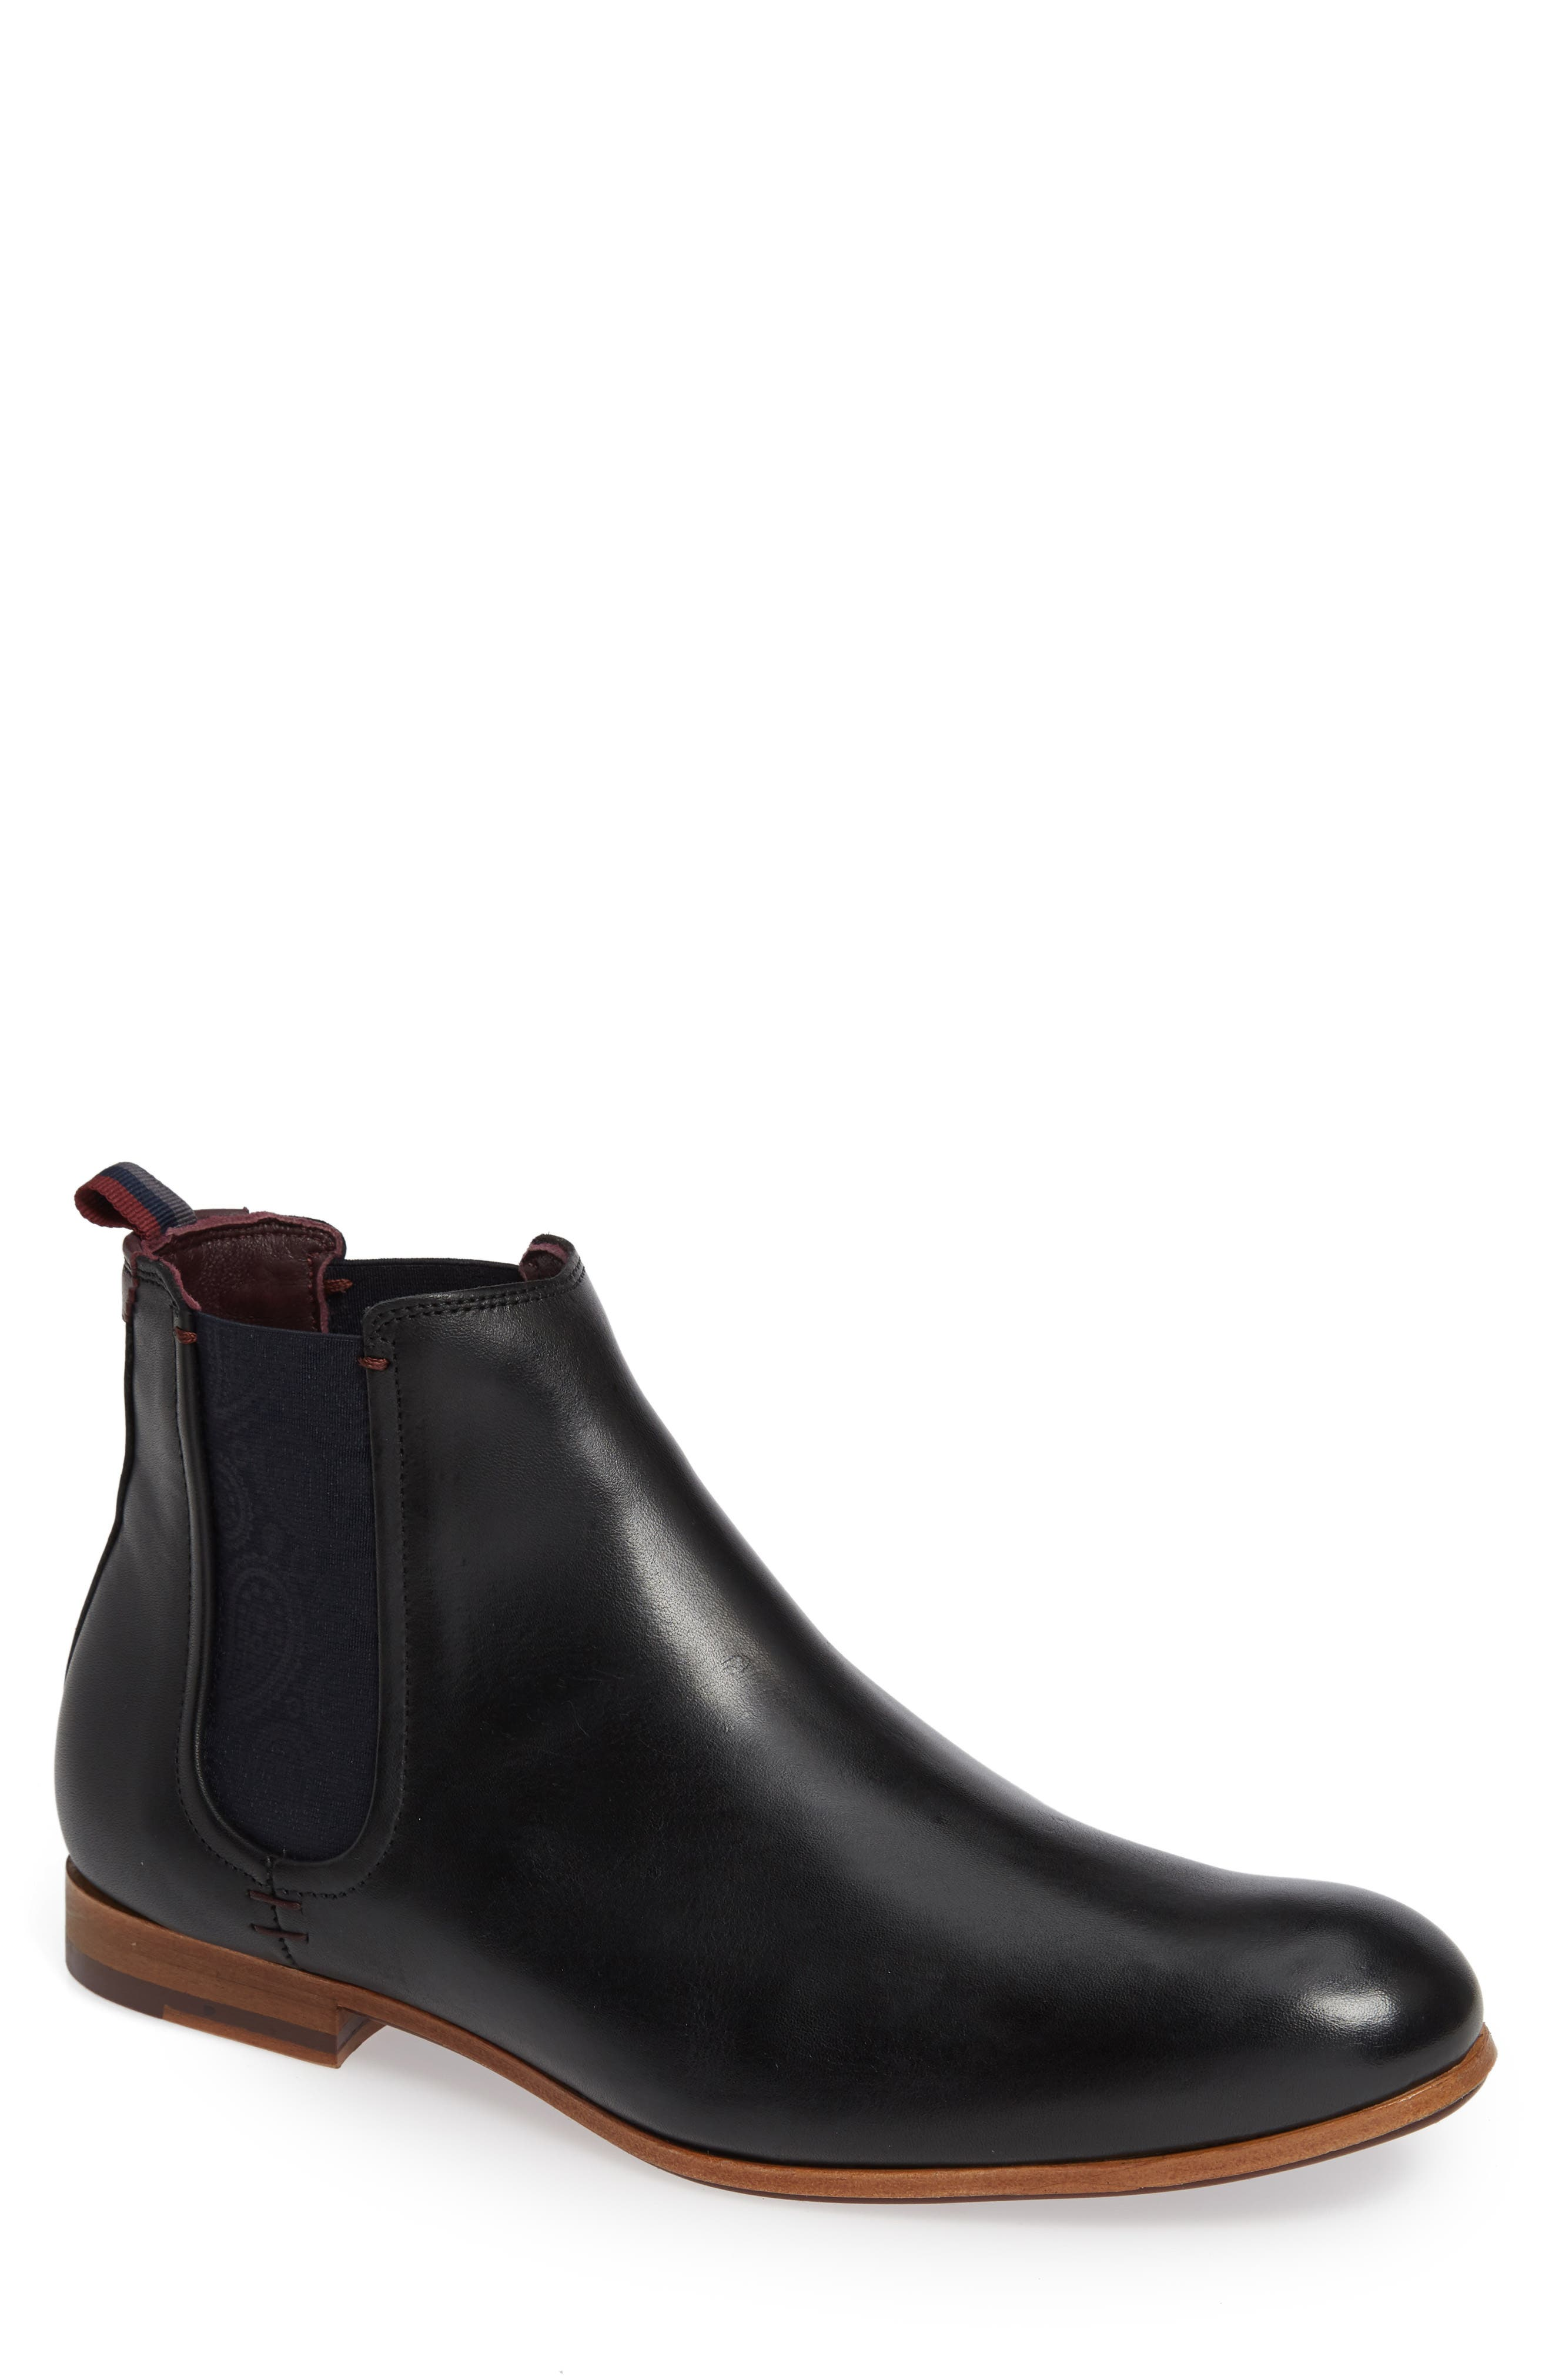 Whron Chelsea Boot,                         Main,                         color, BLACK